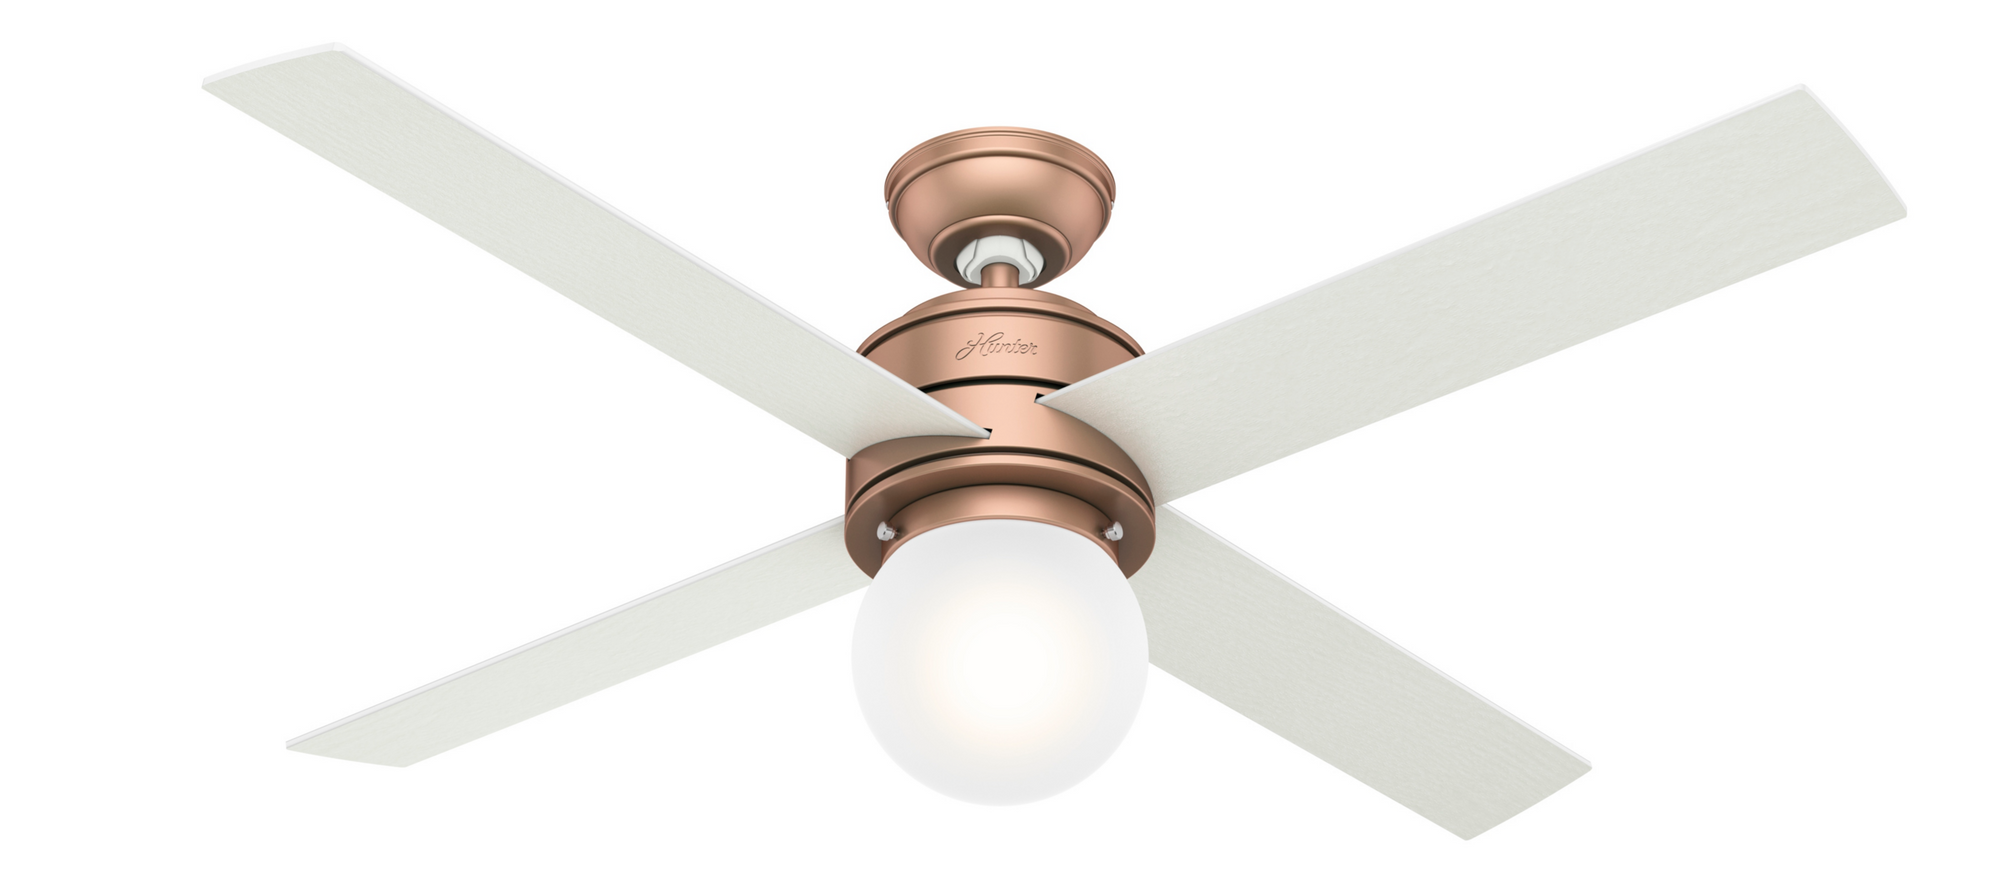 Hunter Indoor Hepburn Ceiling Fan with LED LightJD inch, Bronze/Brown, 59330